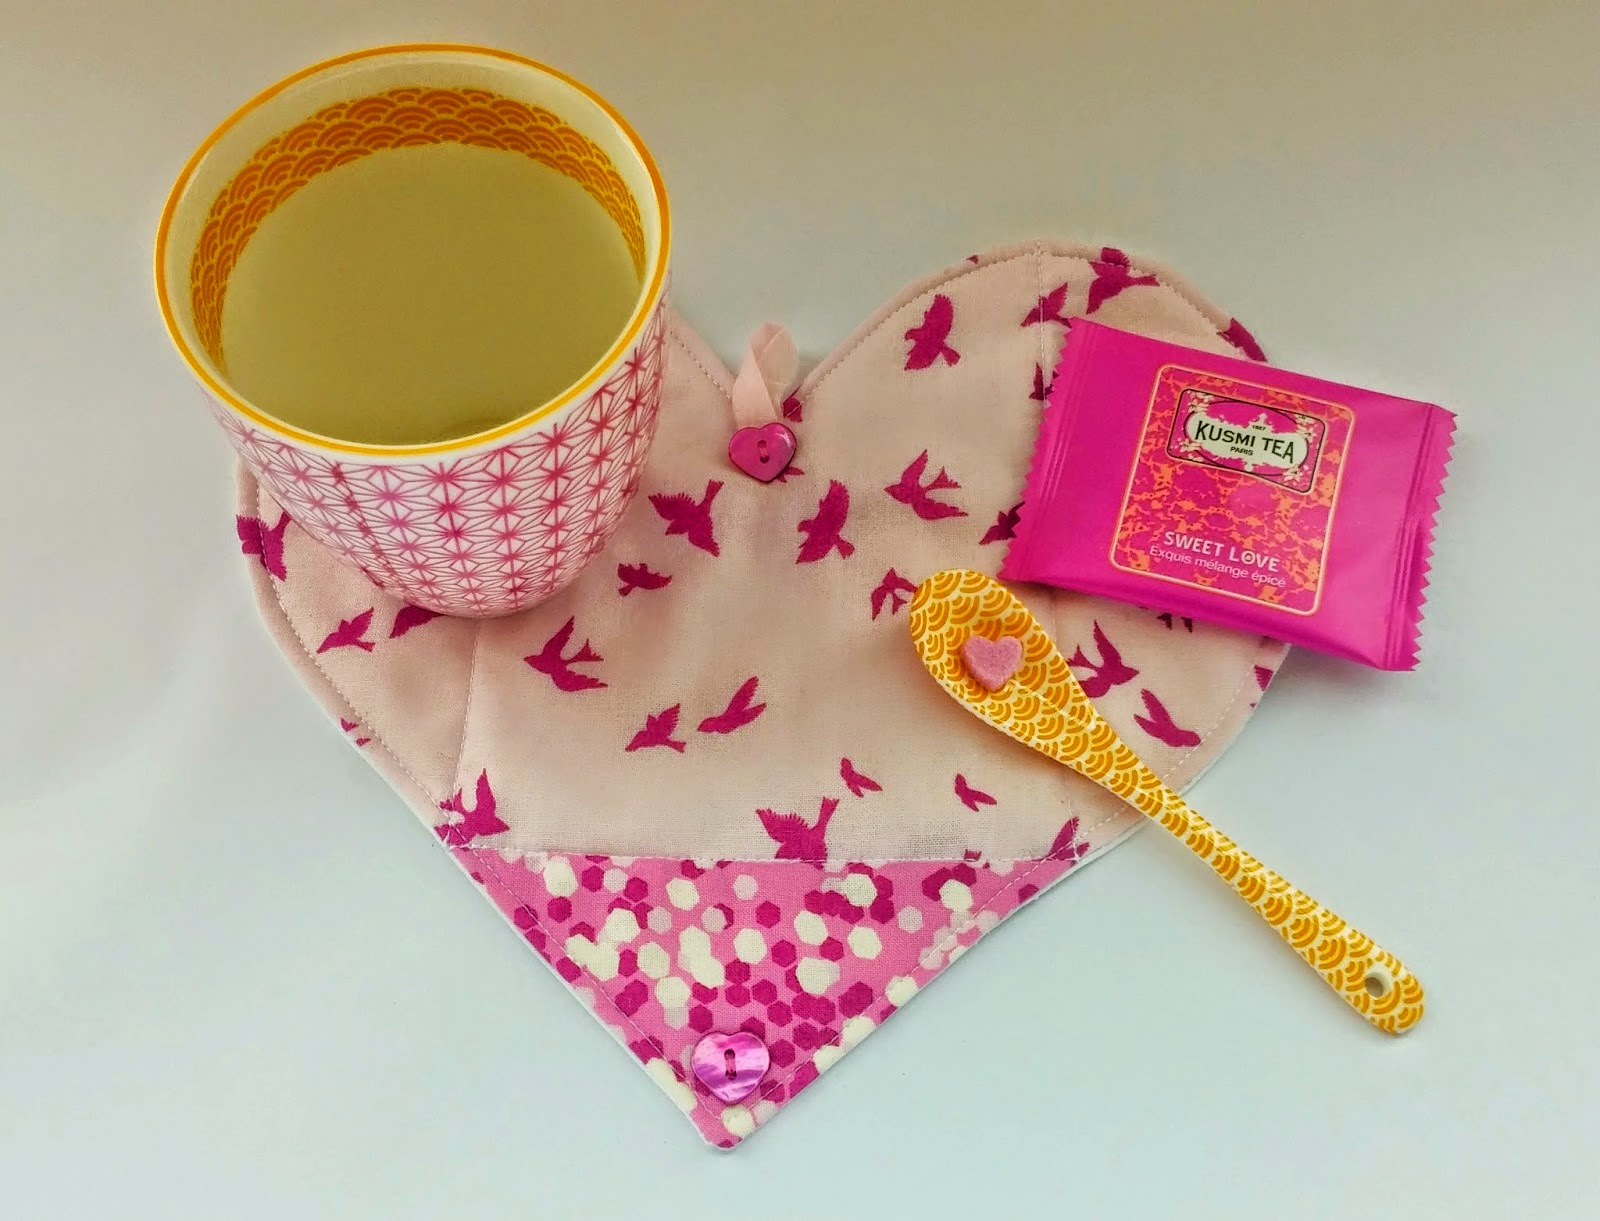 http://ellaandnesta.blogspot.it/2015/02/how-to-make-folding-envelope-heart-mug.html